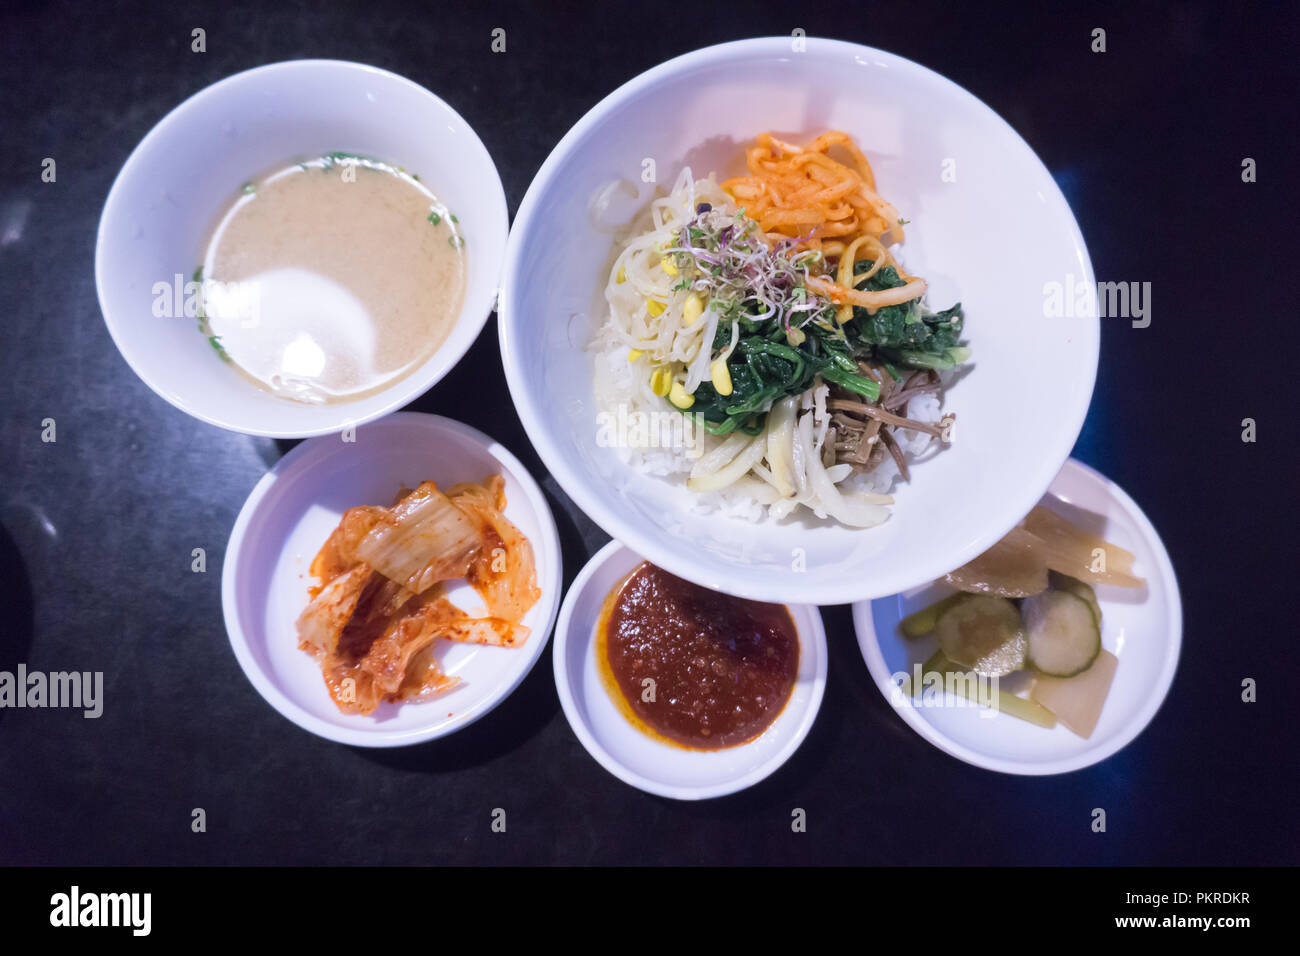 Bibimbap - Rice mixed with vegetables, meat, and chili pepper paste and side dishes from korea. - Stock Image